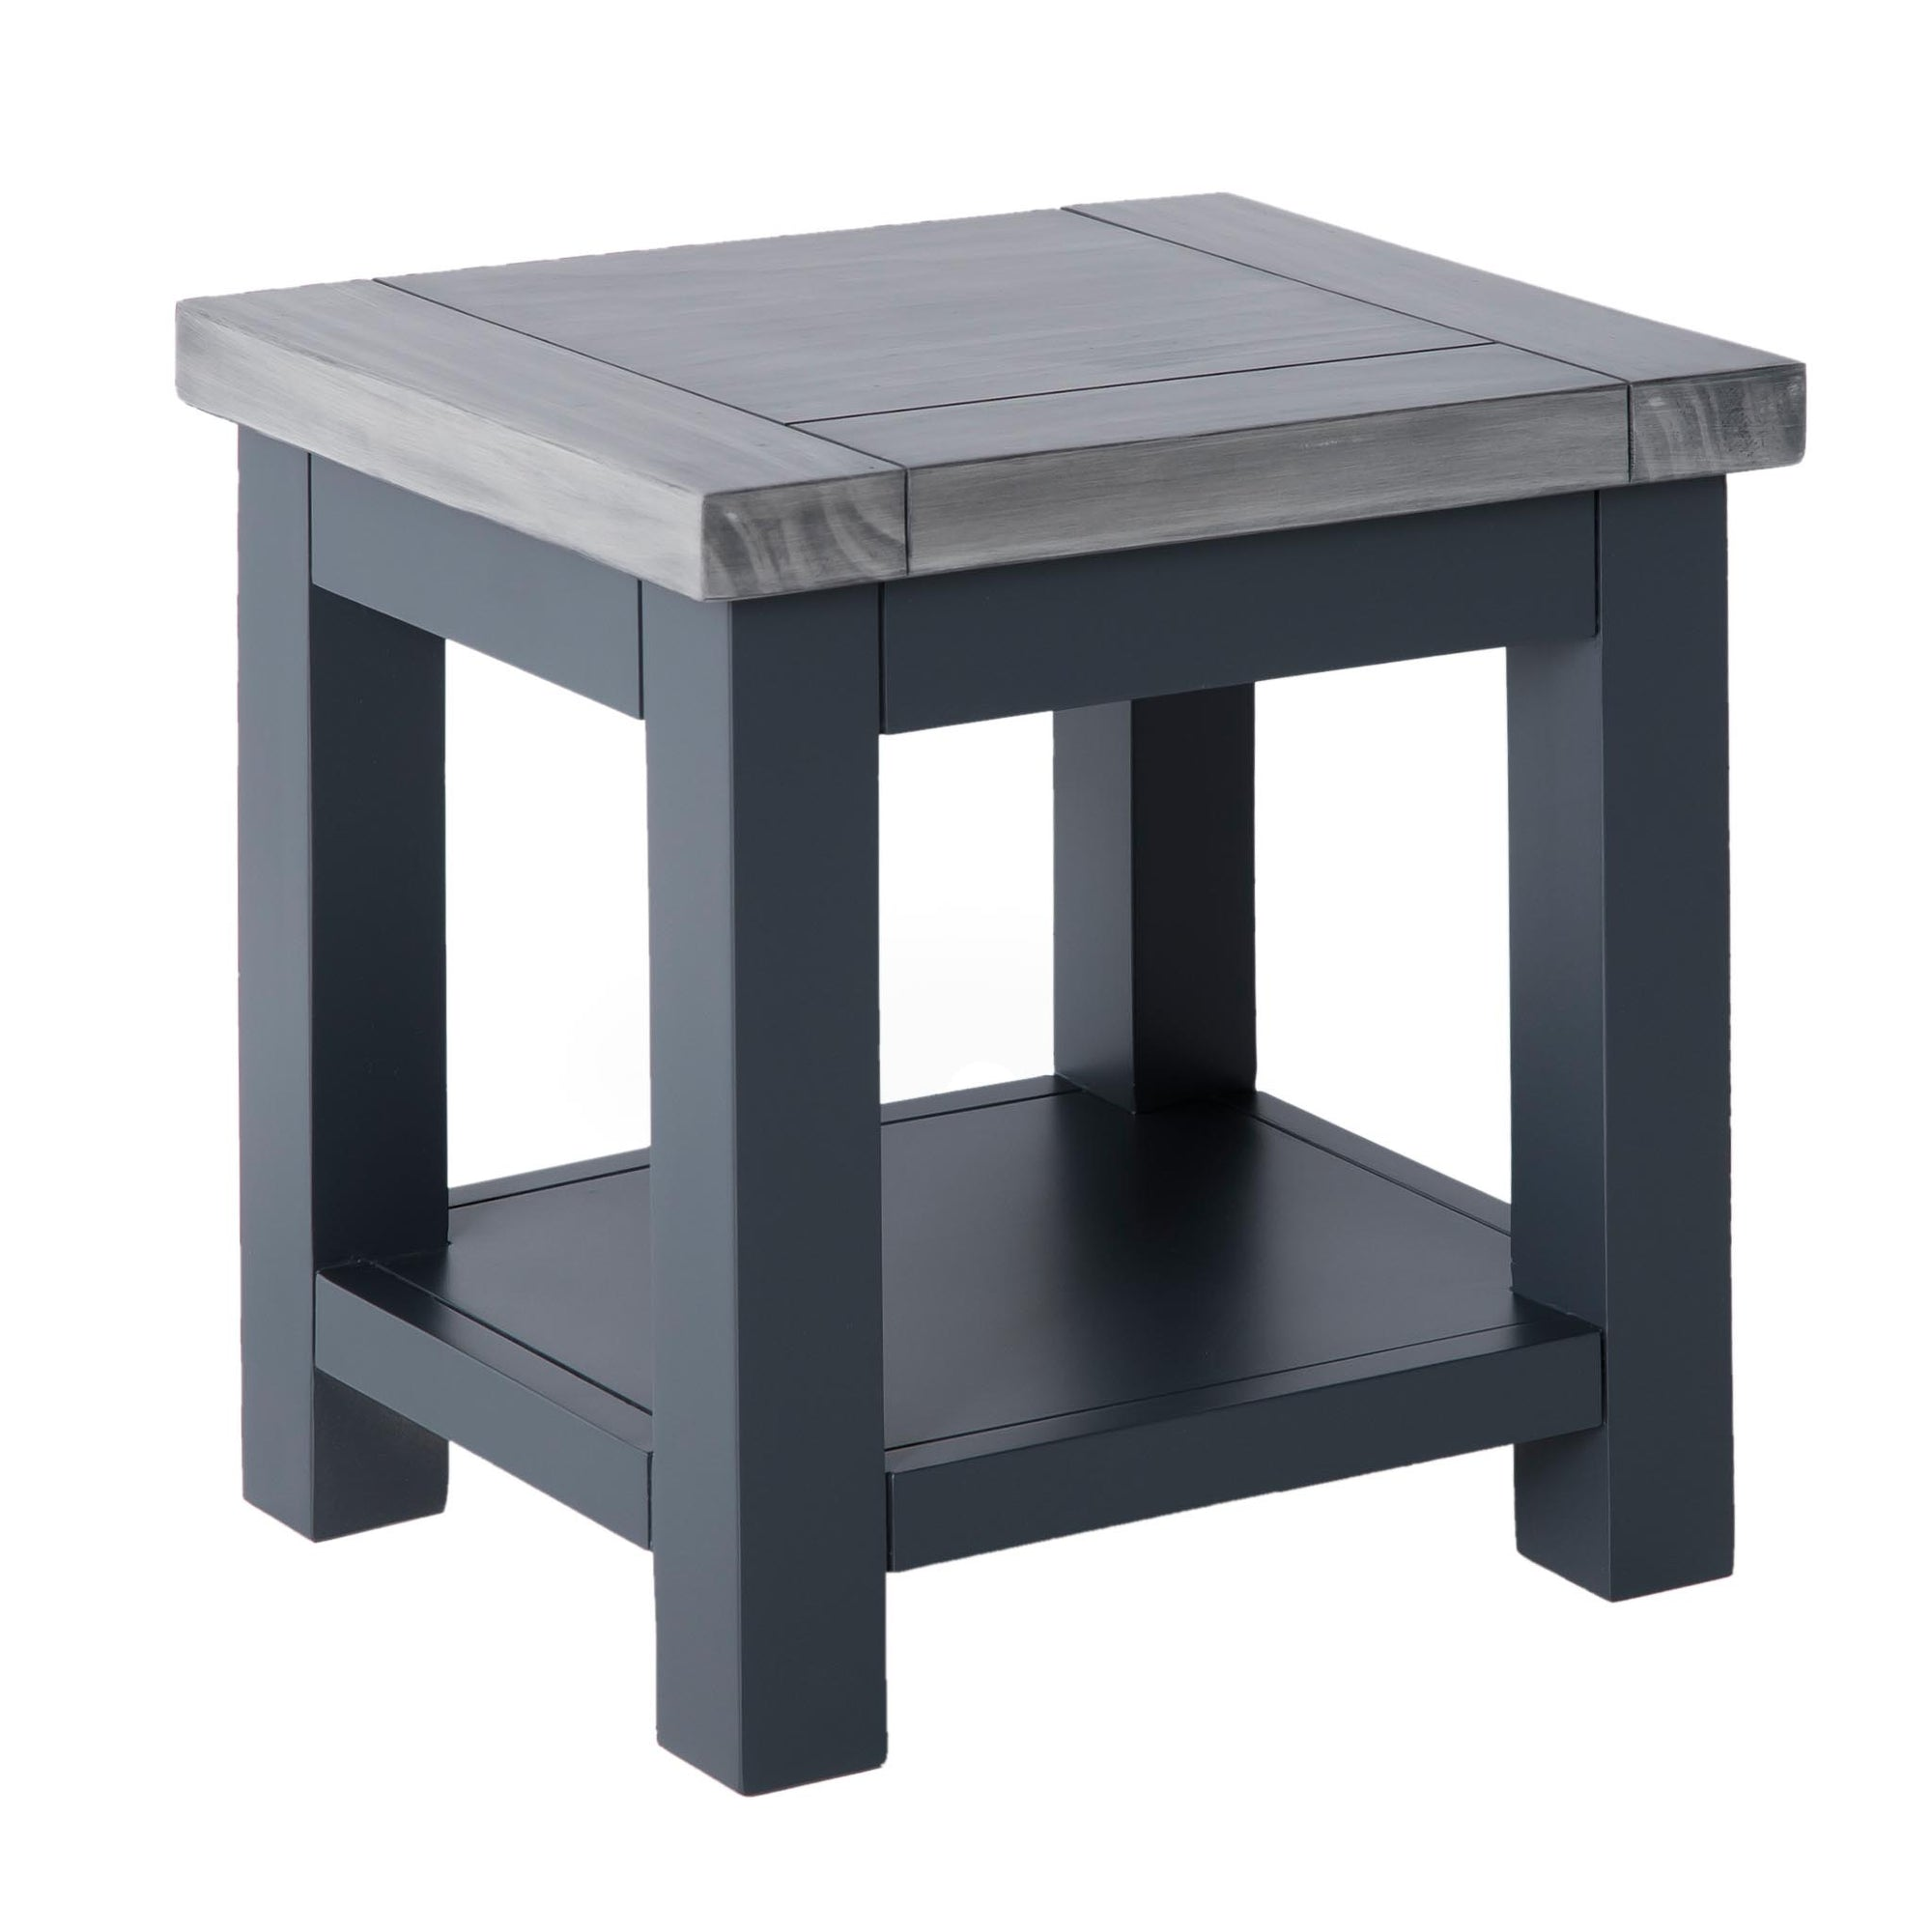 Bristol Charcoal Lamp Table by Roseland Furniture